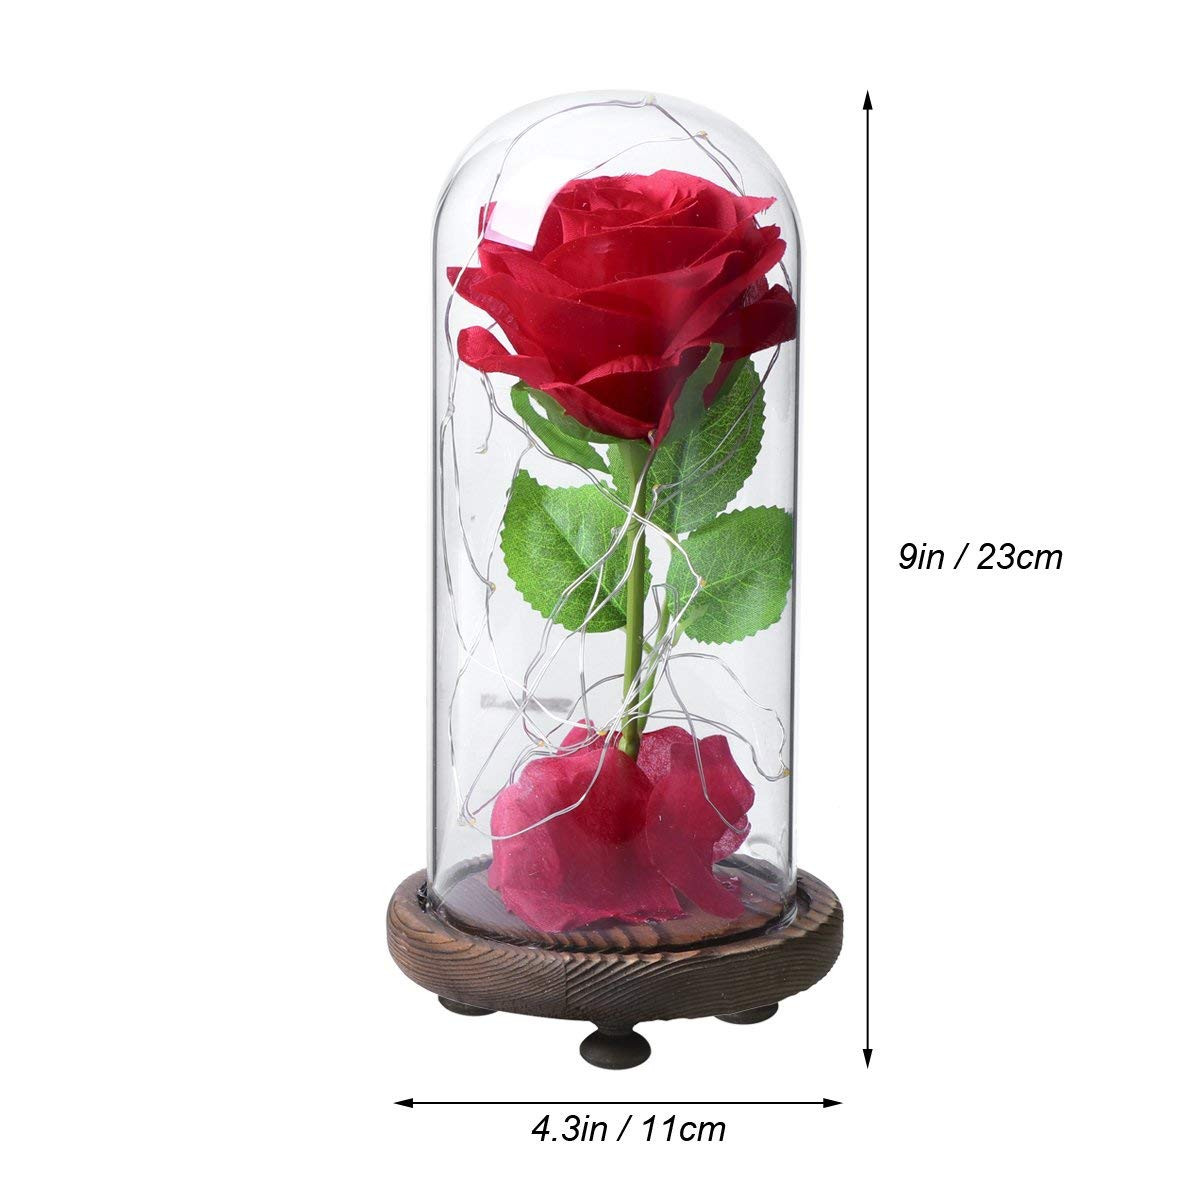 24k forever rose and engraved vase of amazon com ledmomo red silk rose and led light with fallen petals pertaining to amazon com ledmomo red silk rose and led light with fallen petals in a glass dome on wooden base gift for home decor mothers day gift valentines day